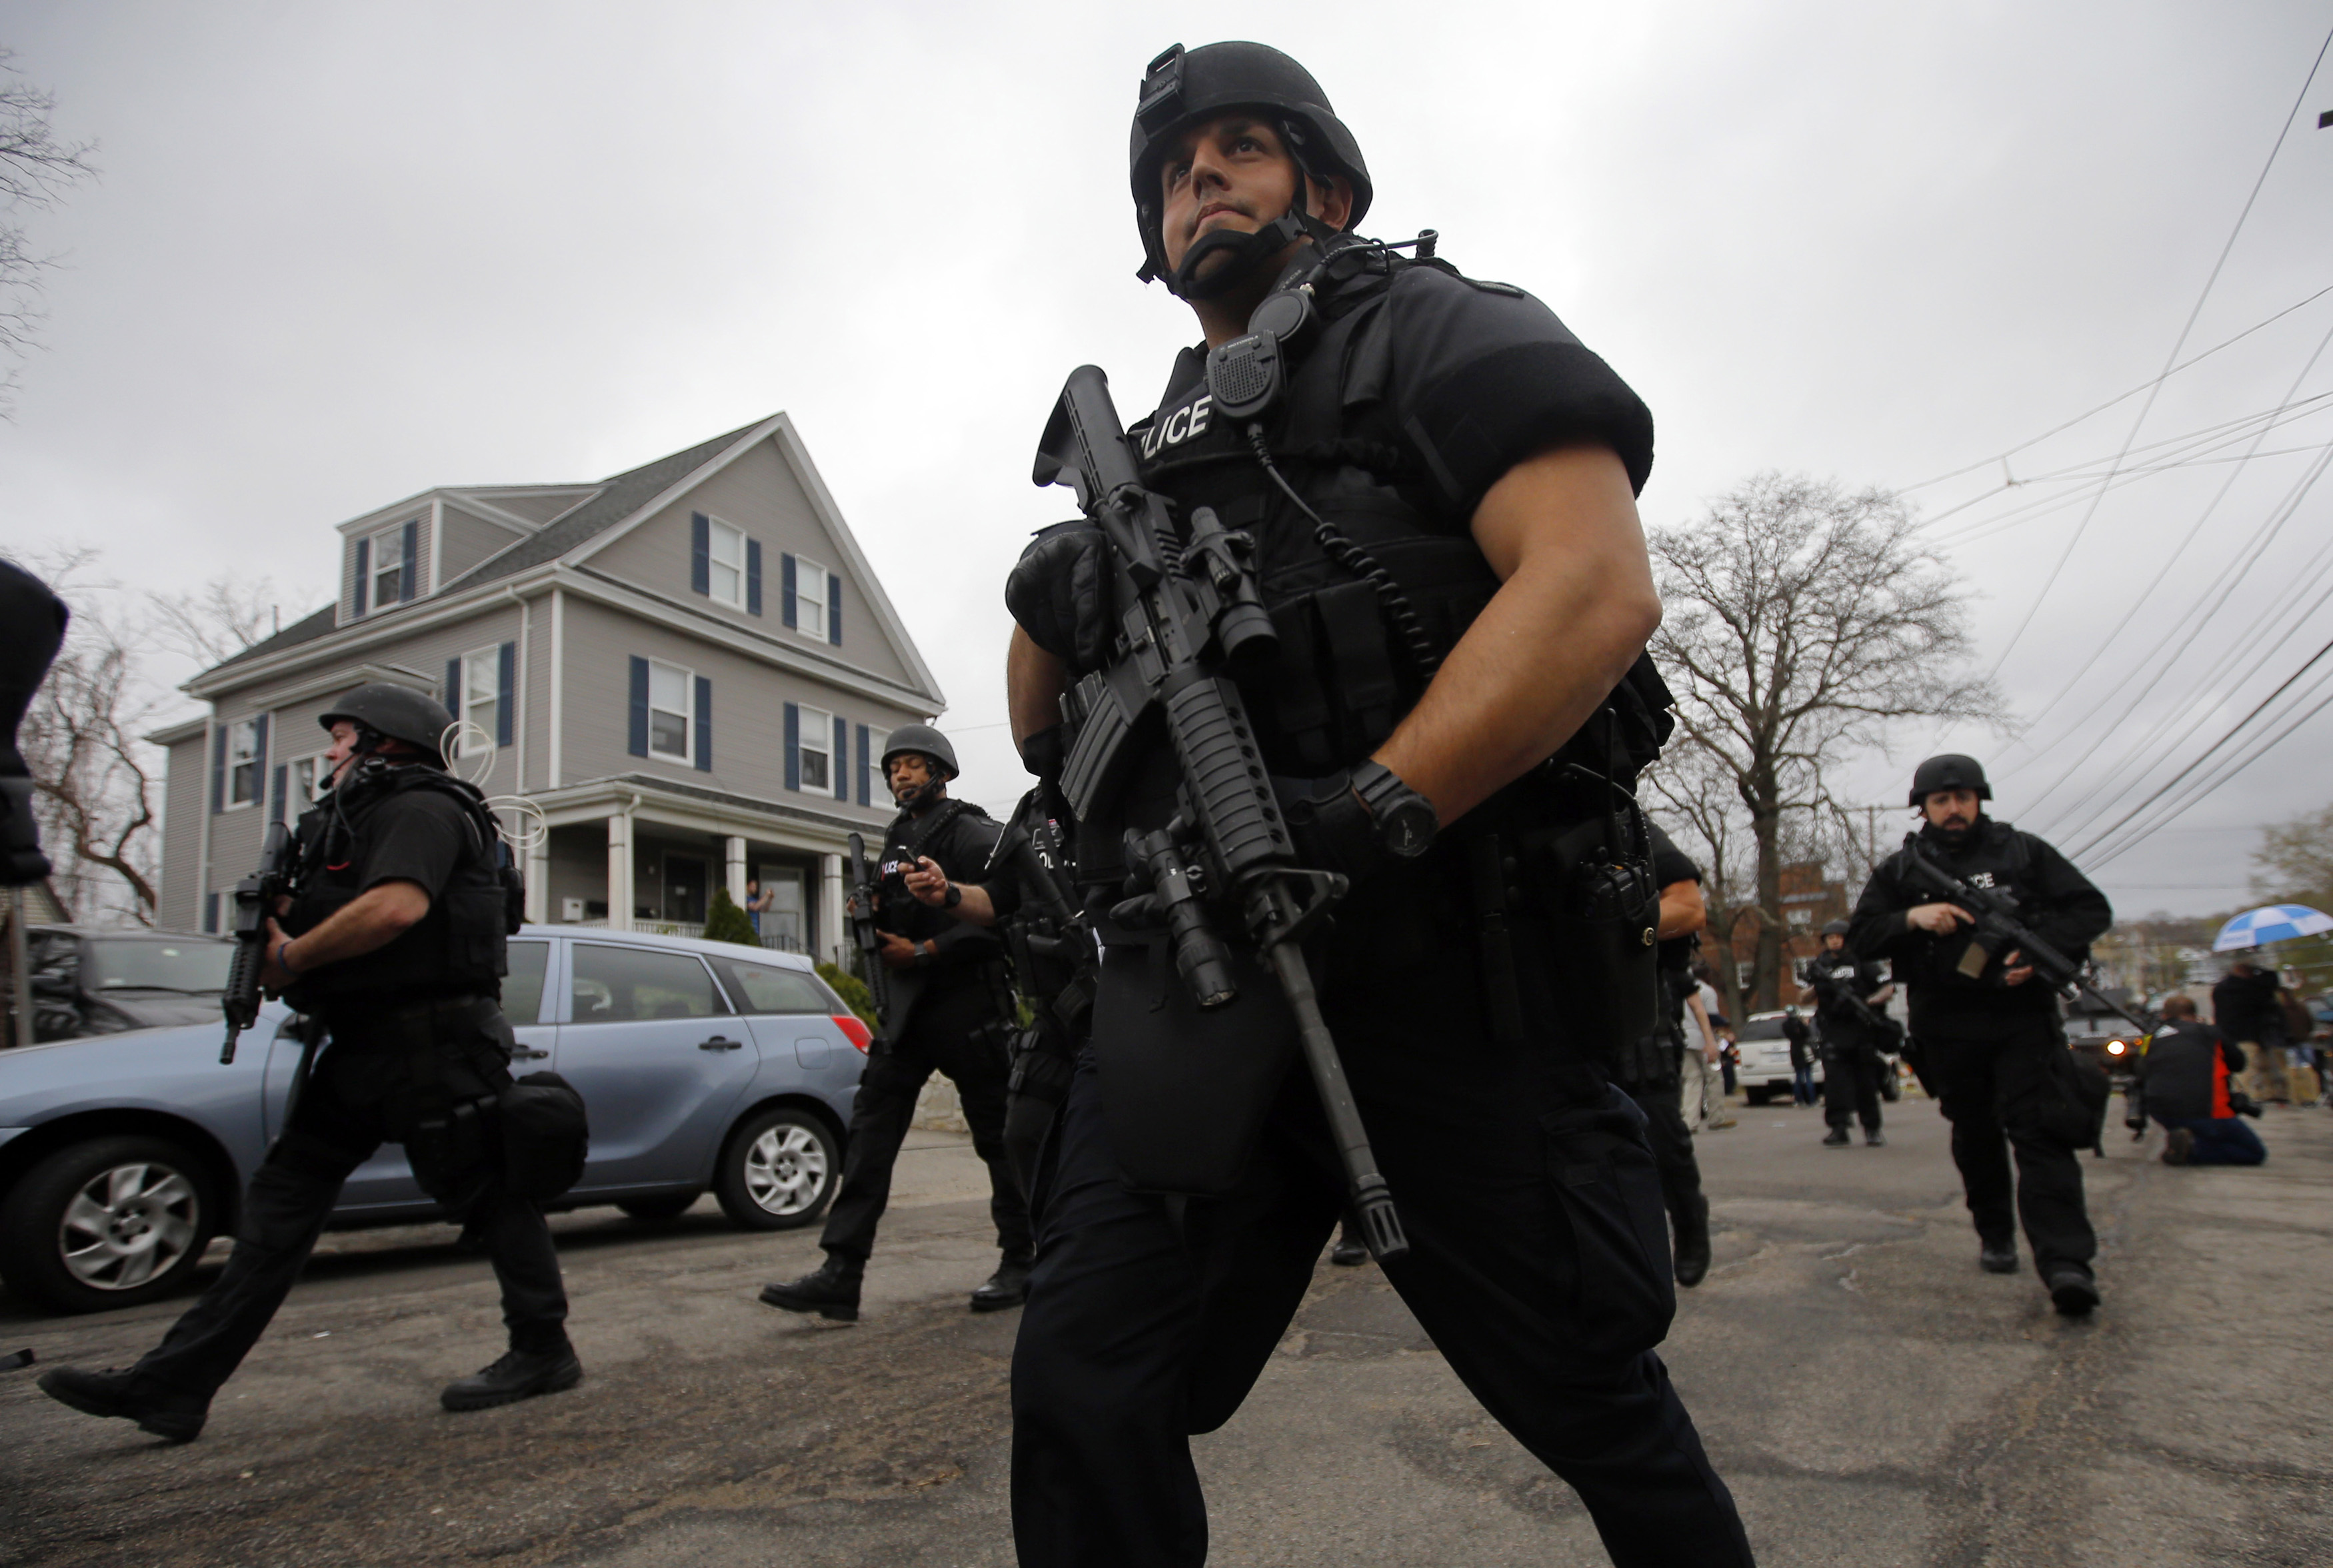 Police officers searched house to house for Dzhokhar Tsarnaev, the surviving suspect in the Boston Marathon bombings, in a neighborhood in Watertown, Mass., on April 19, 2013.